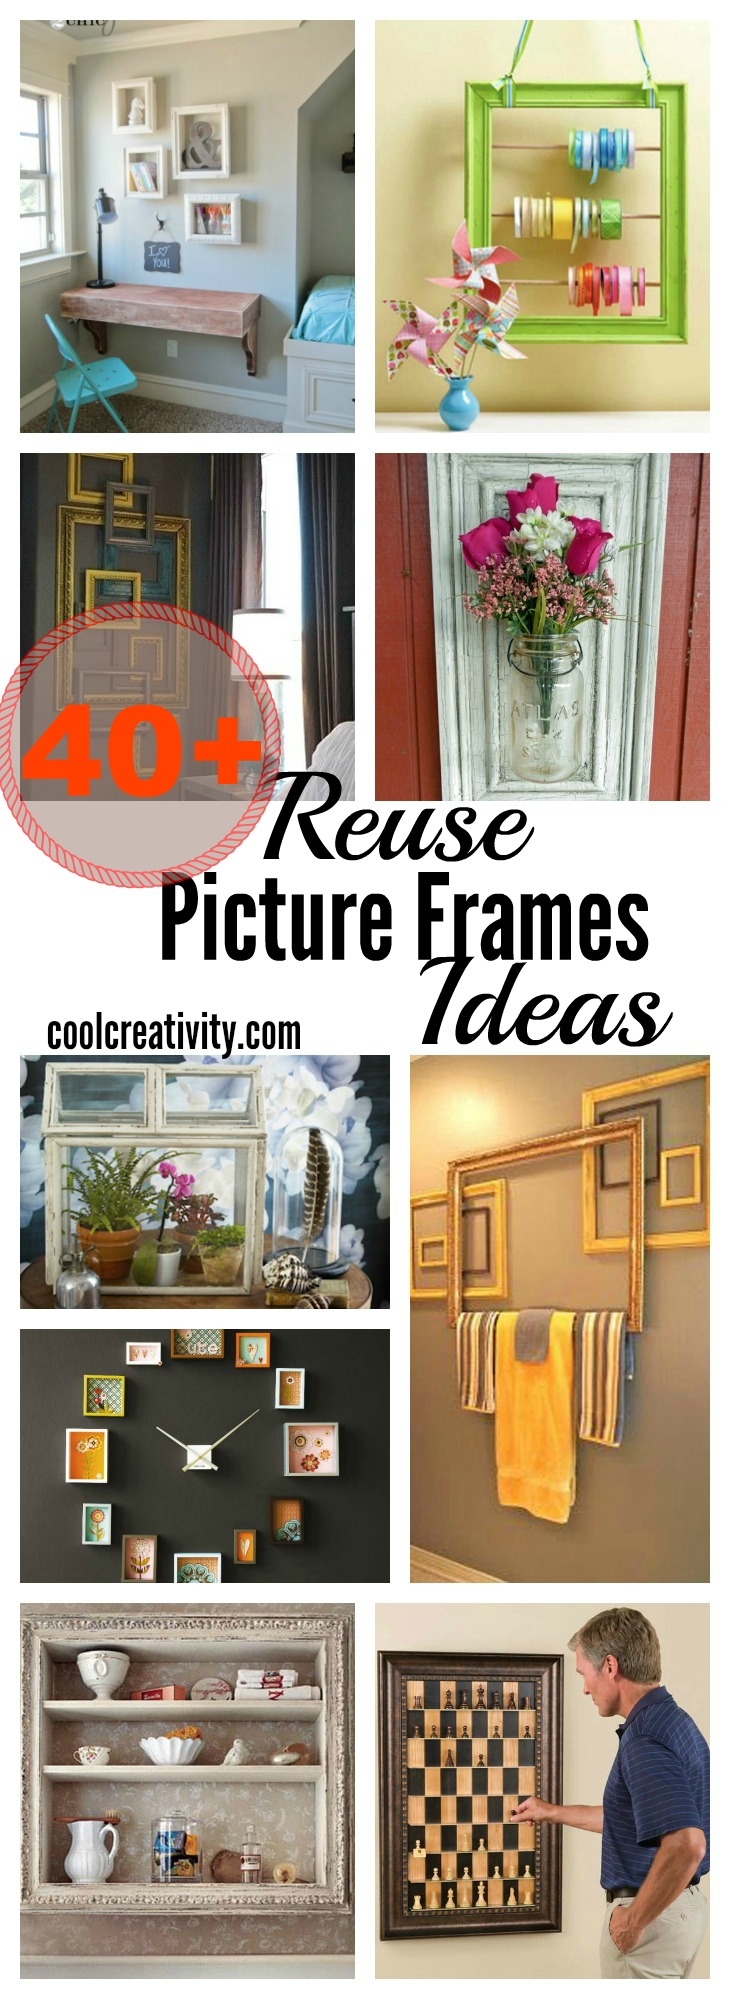 40+ Creative Reuse Old Picture Frames Into Home Decor Ideas